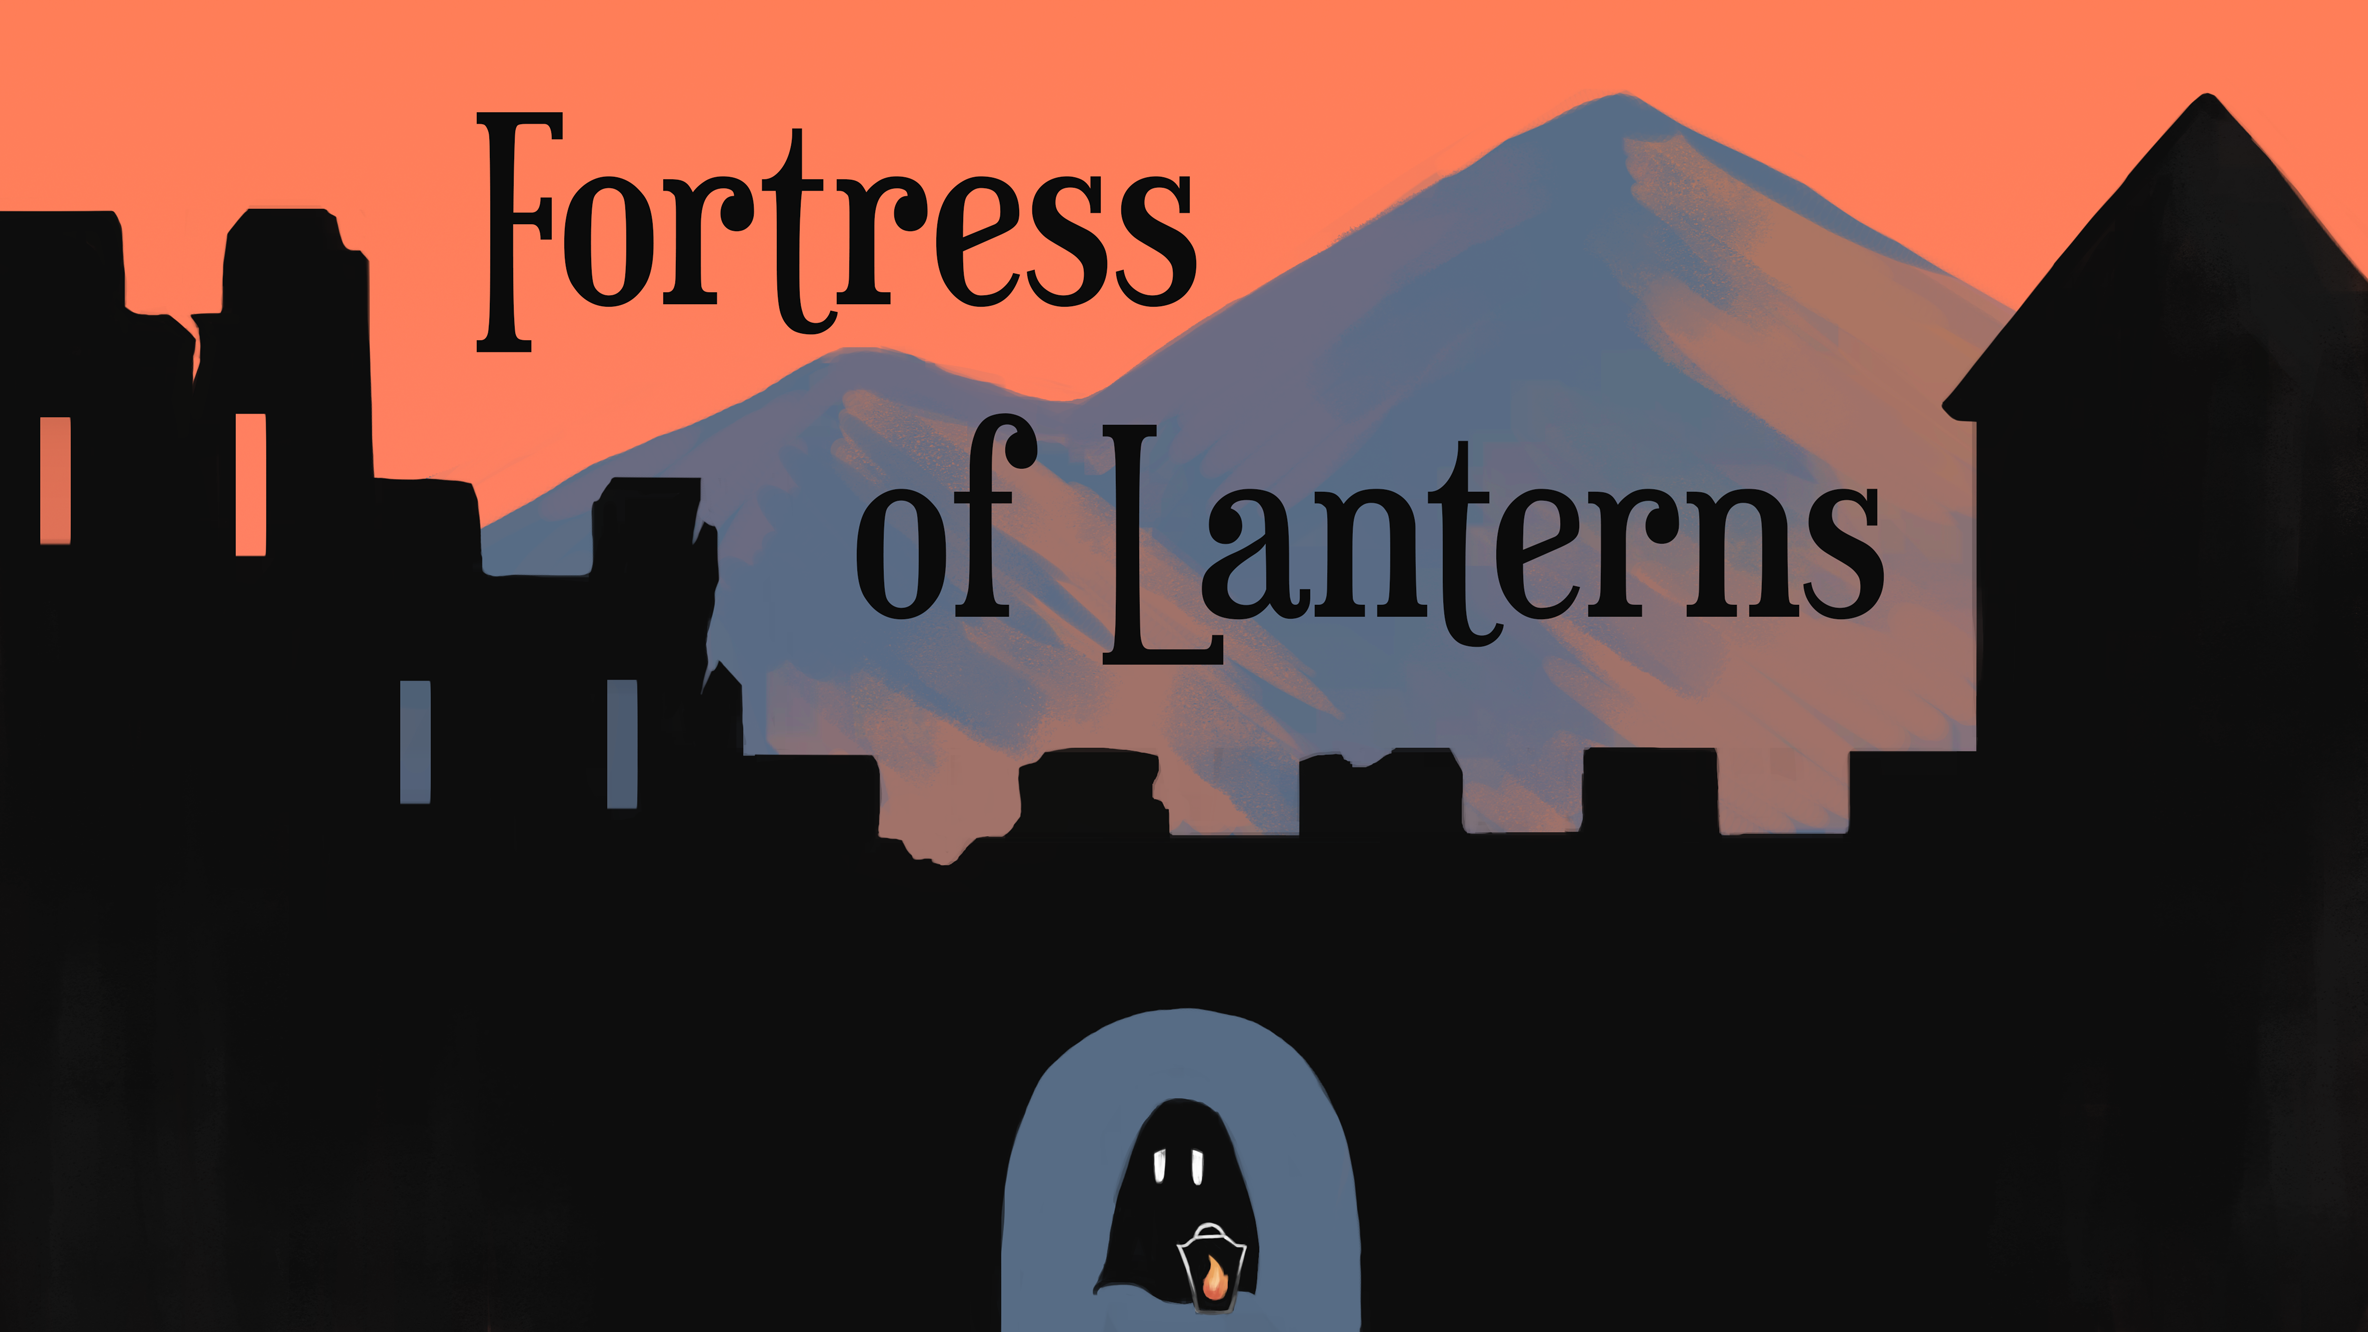 Fortress of Lanterns